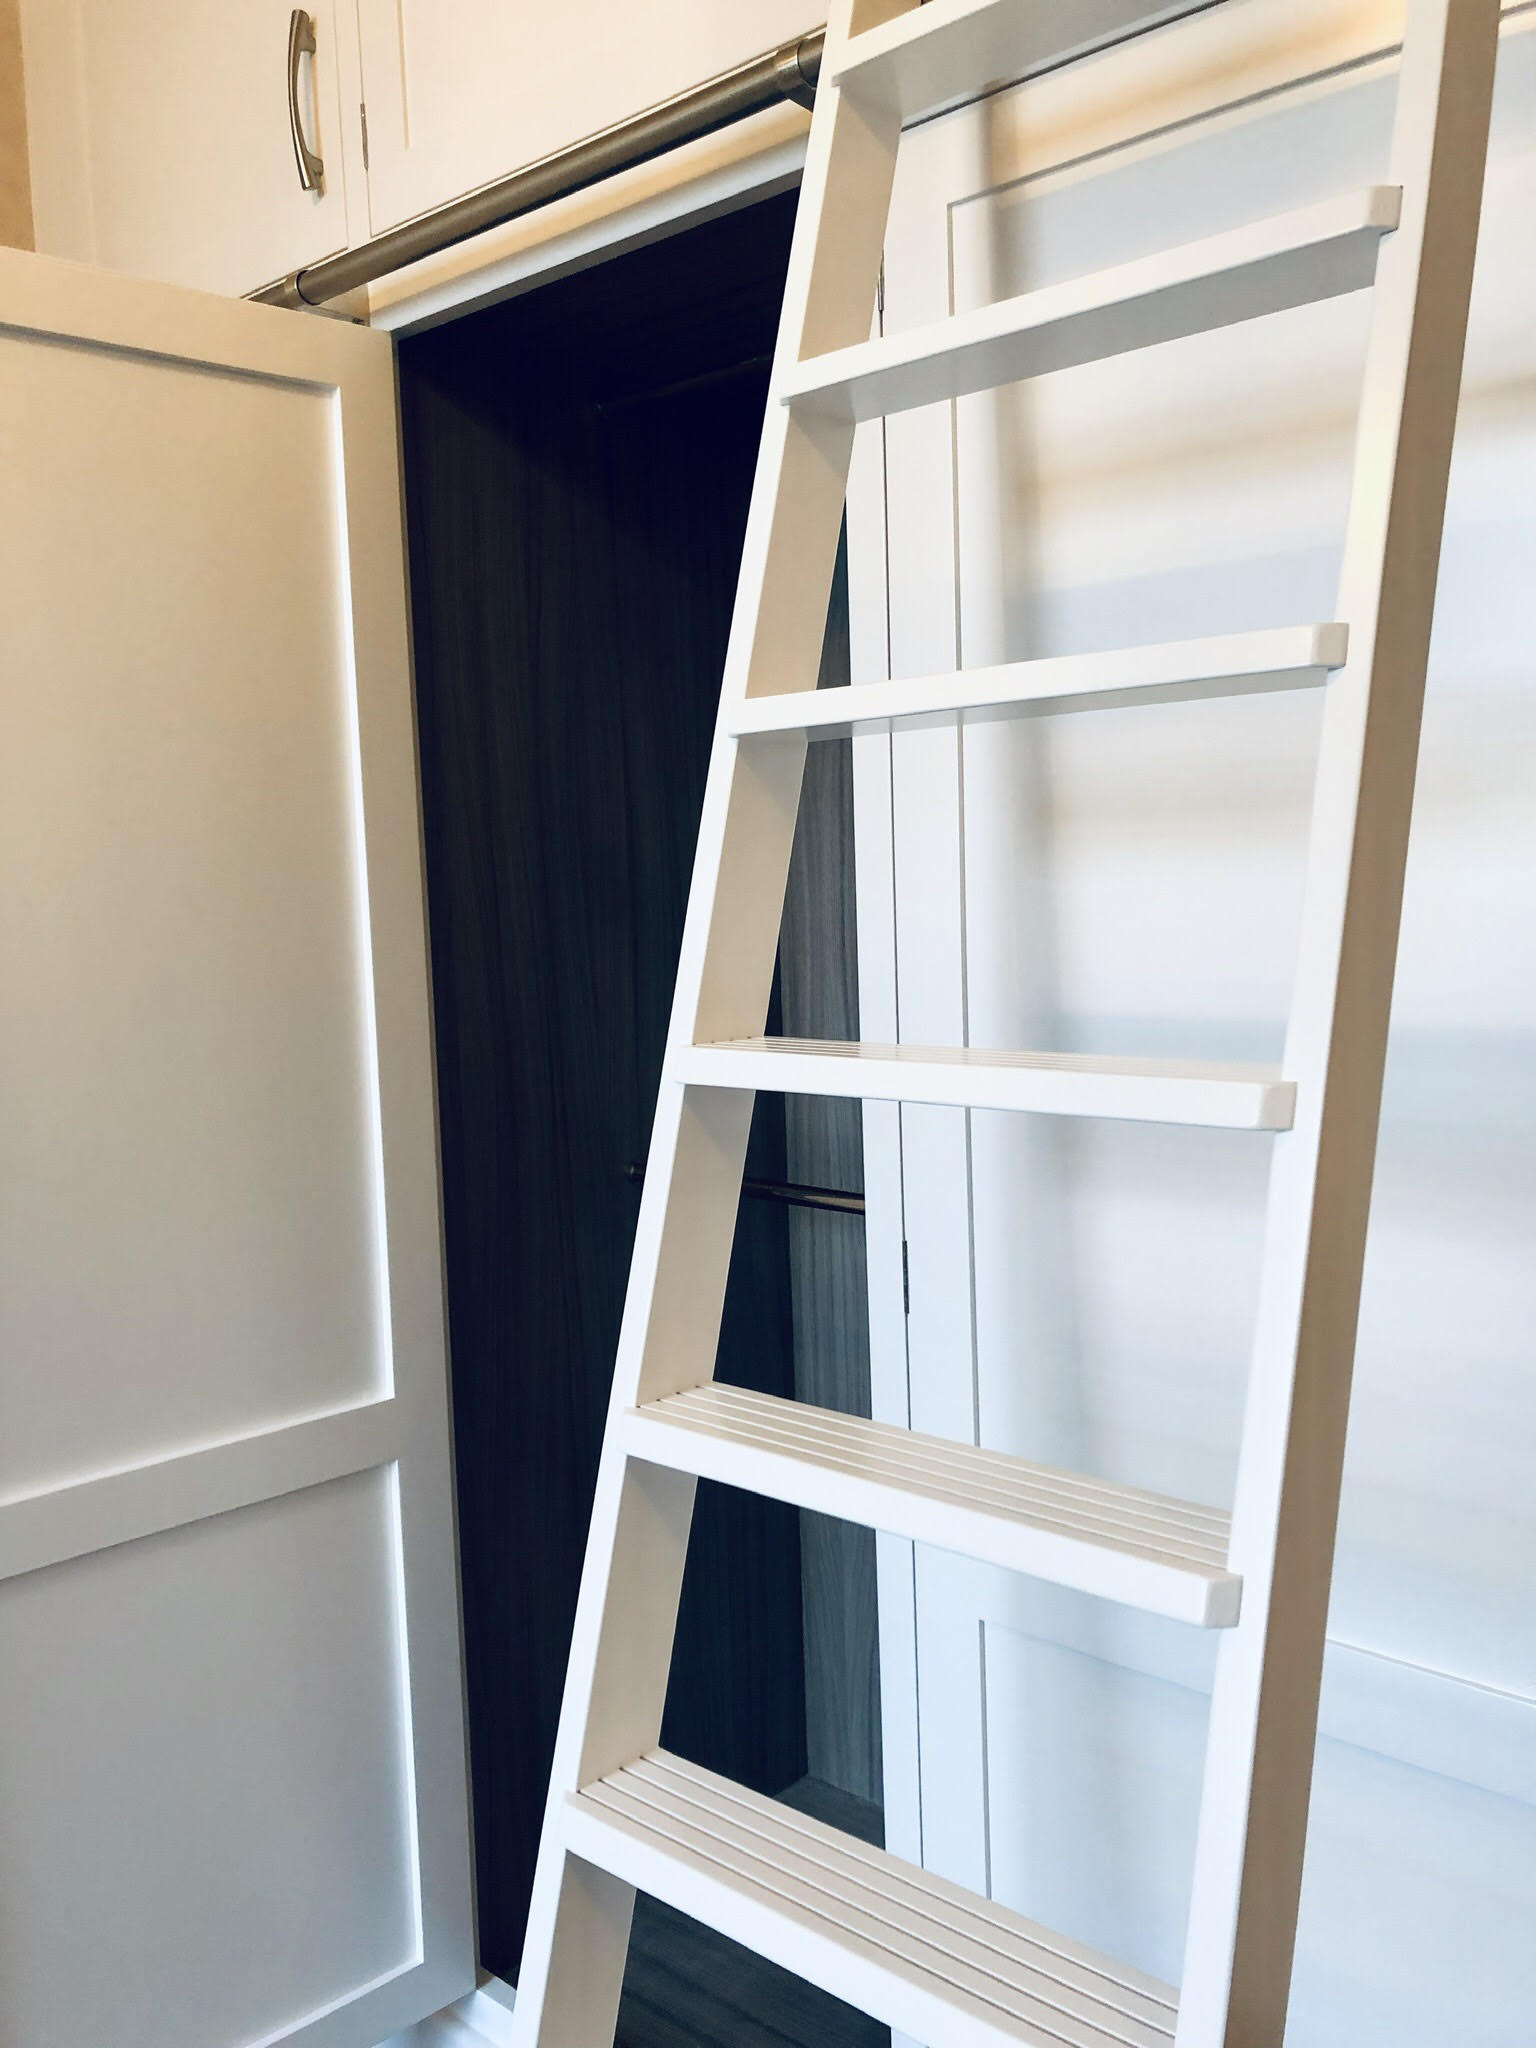 Ladders for top cupboards